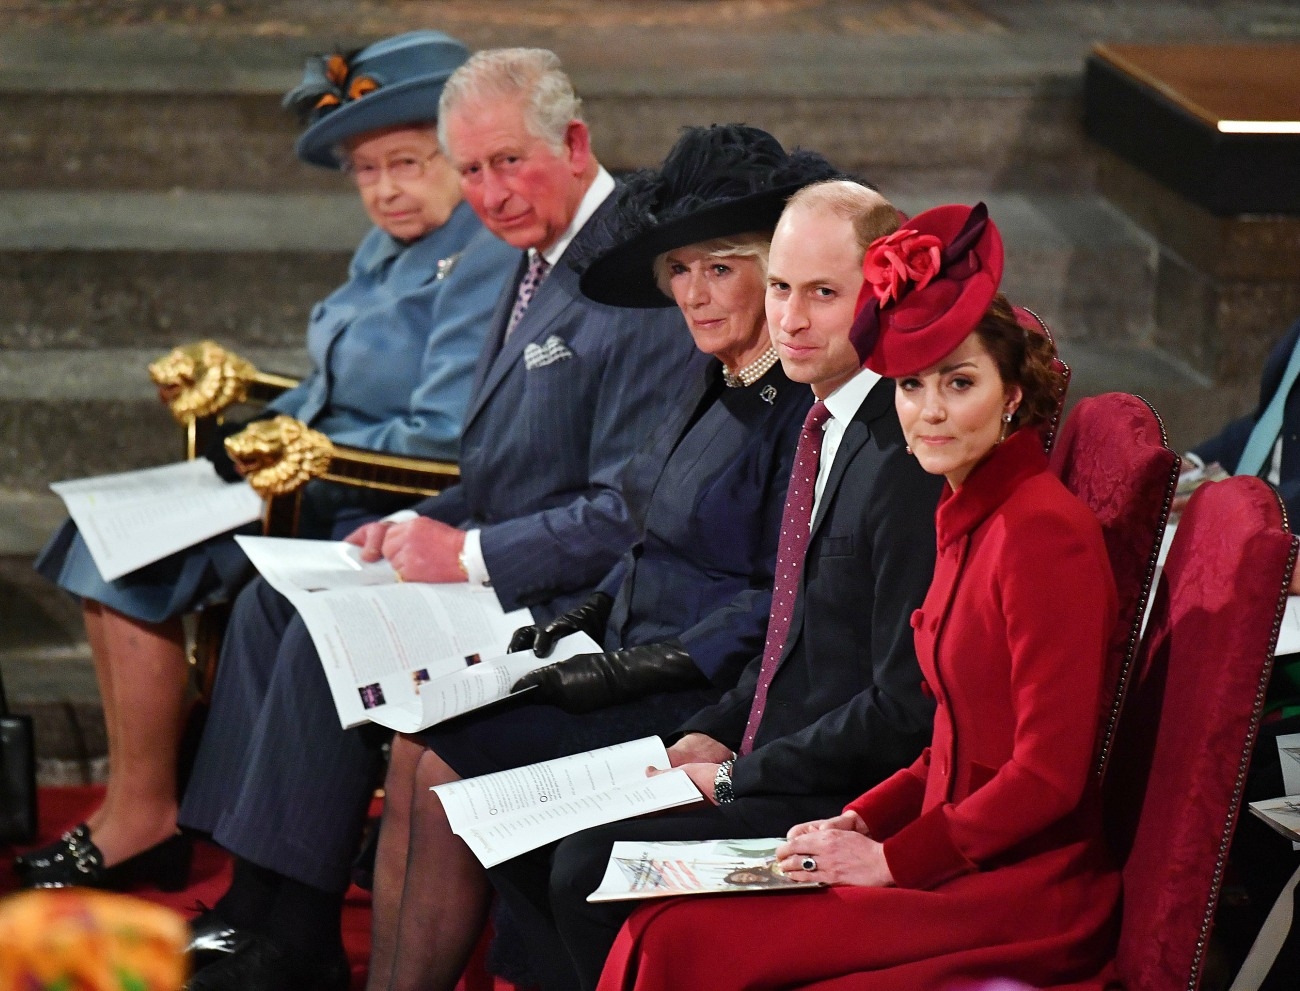 Buckingham Palace's staff is 8.5% ethnic minority, Clarence House is only 8%